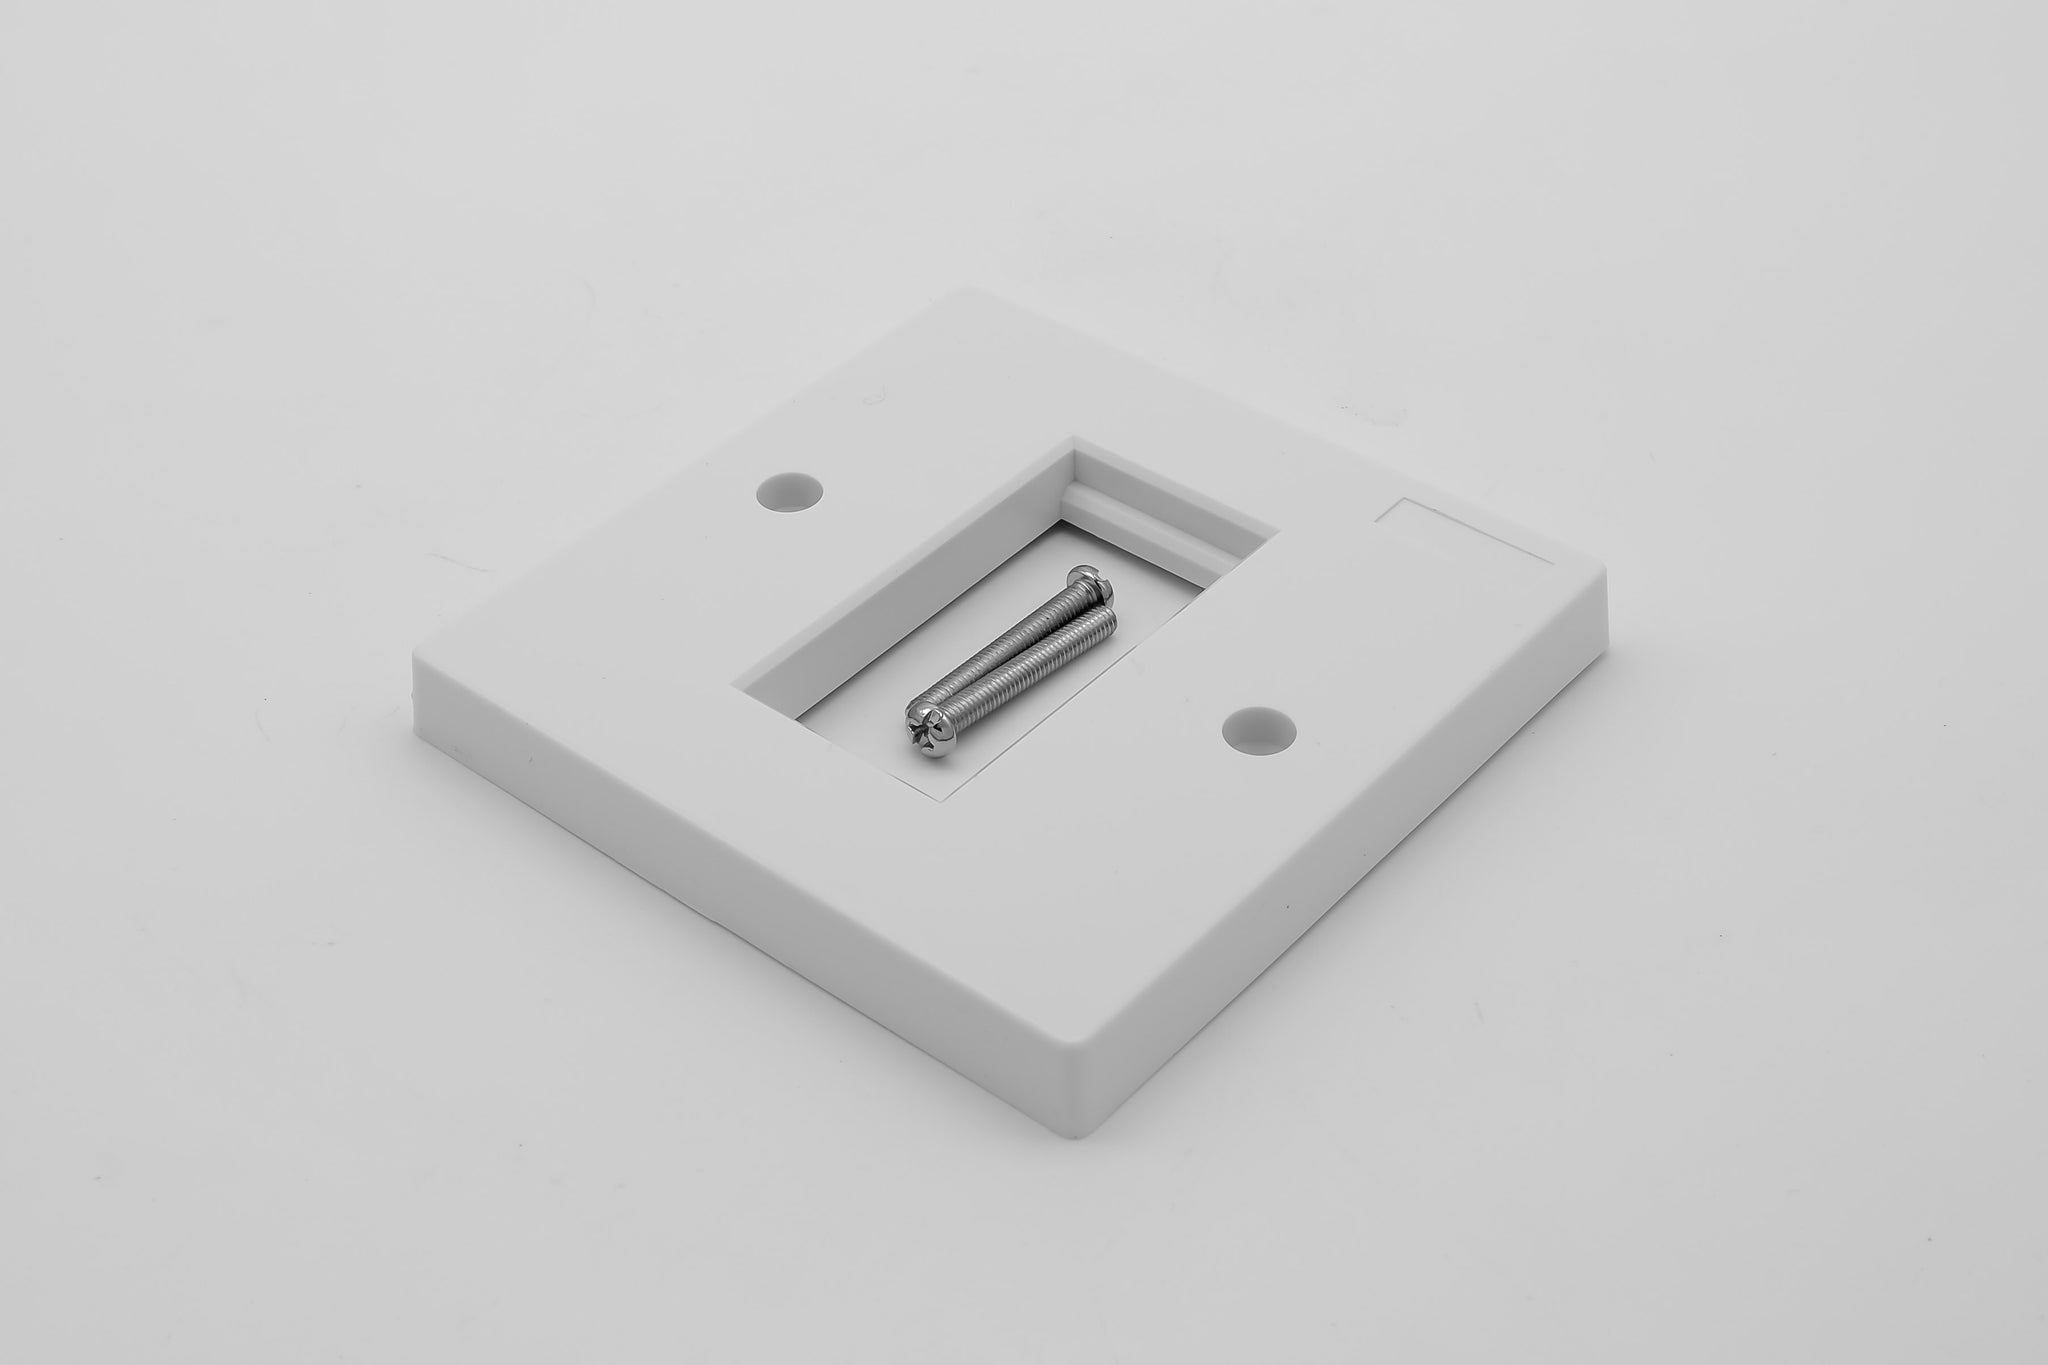 Low Profile Single Gang (1 Slot) Faceplate for 1 x Euro Modules - White